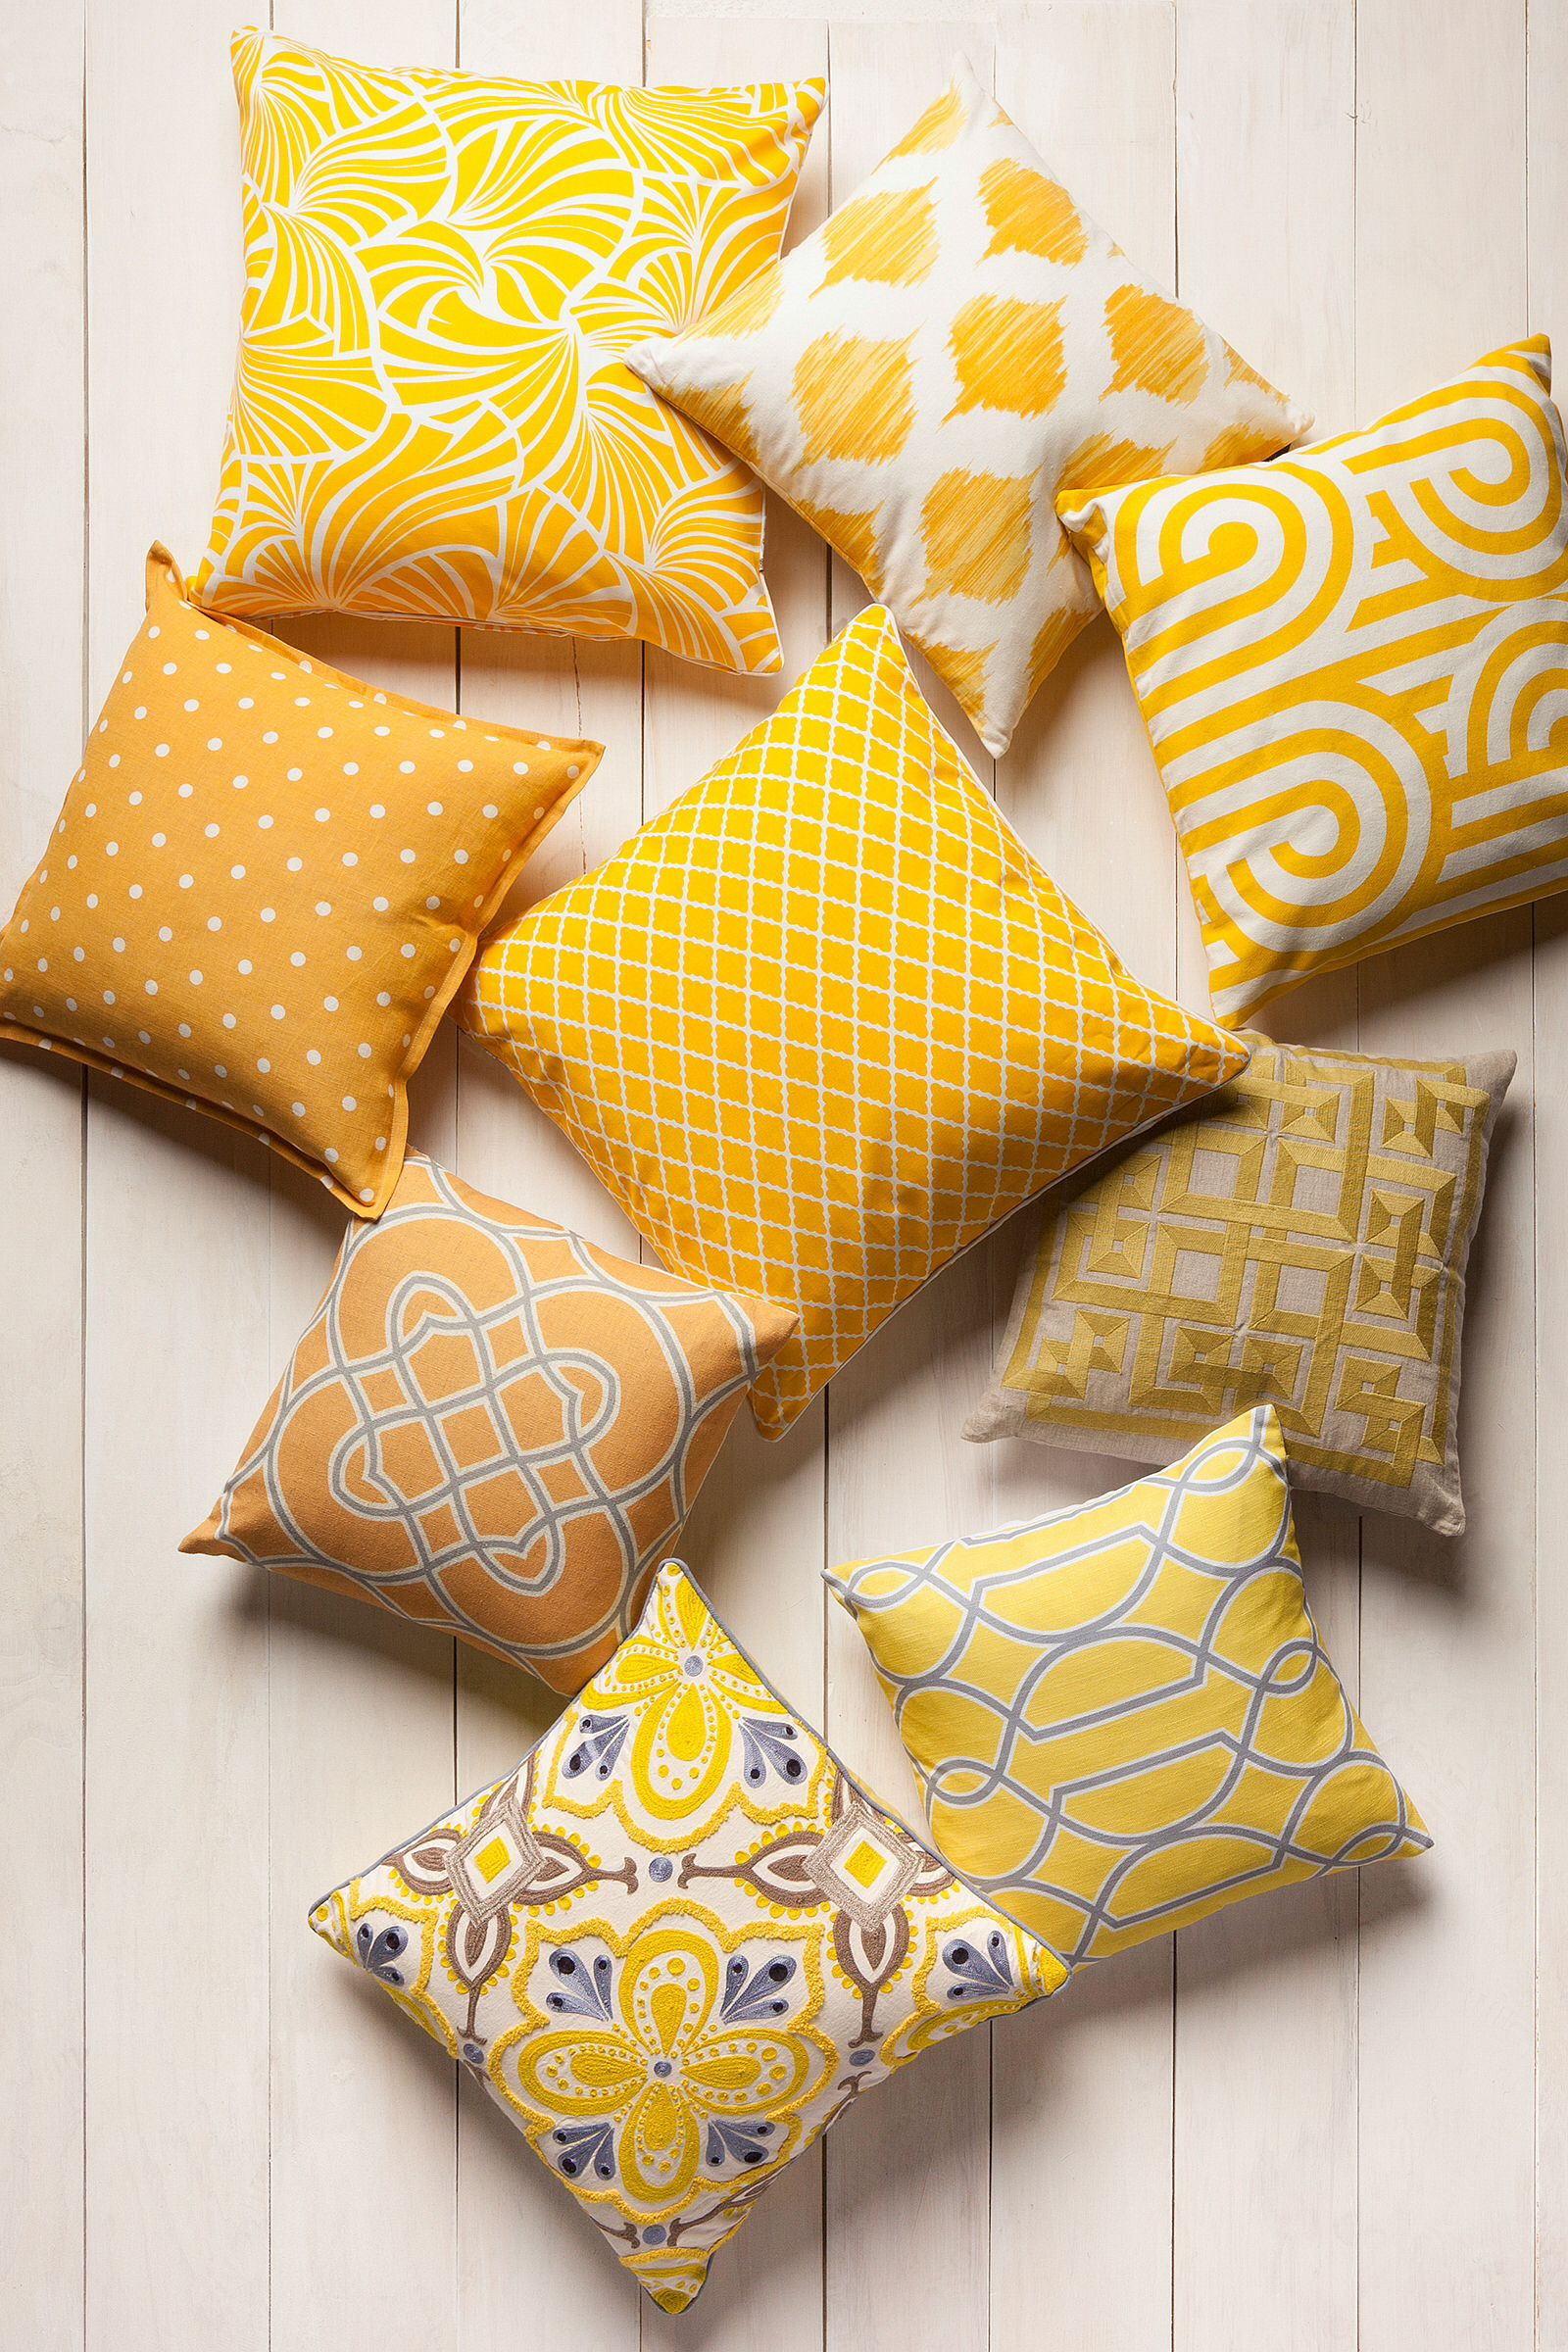 Yellow Pillows From Surya Yellow Pillows Yellow Decor